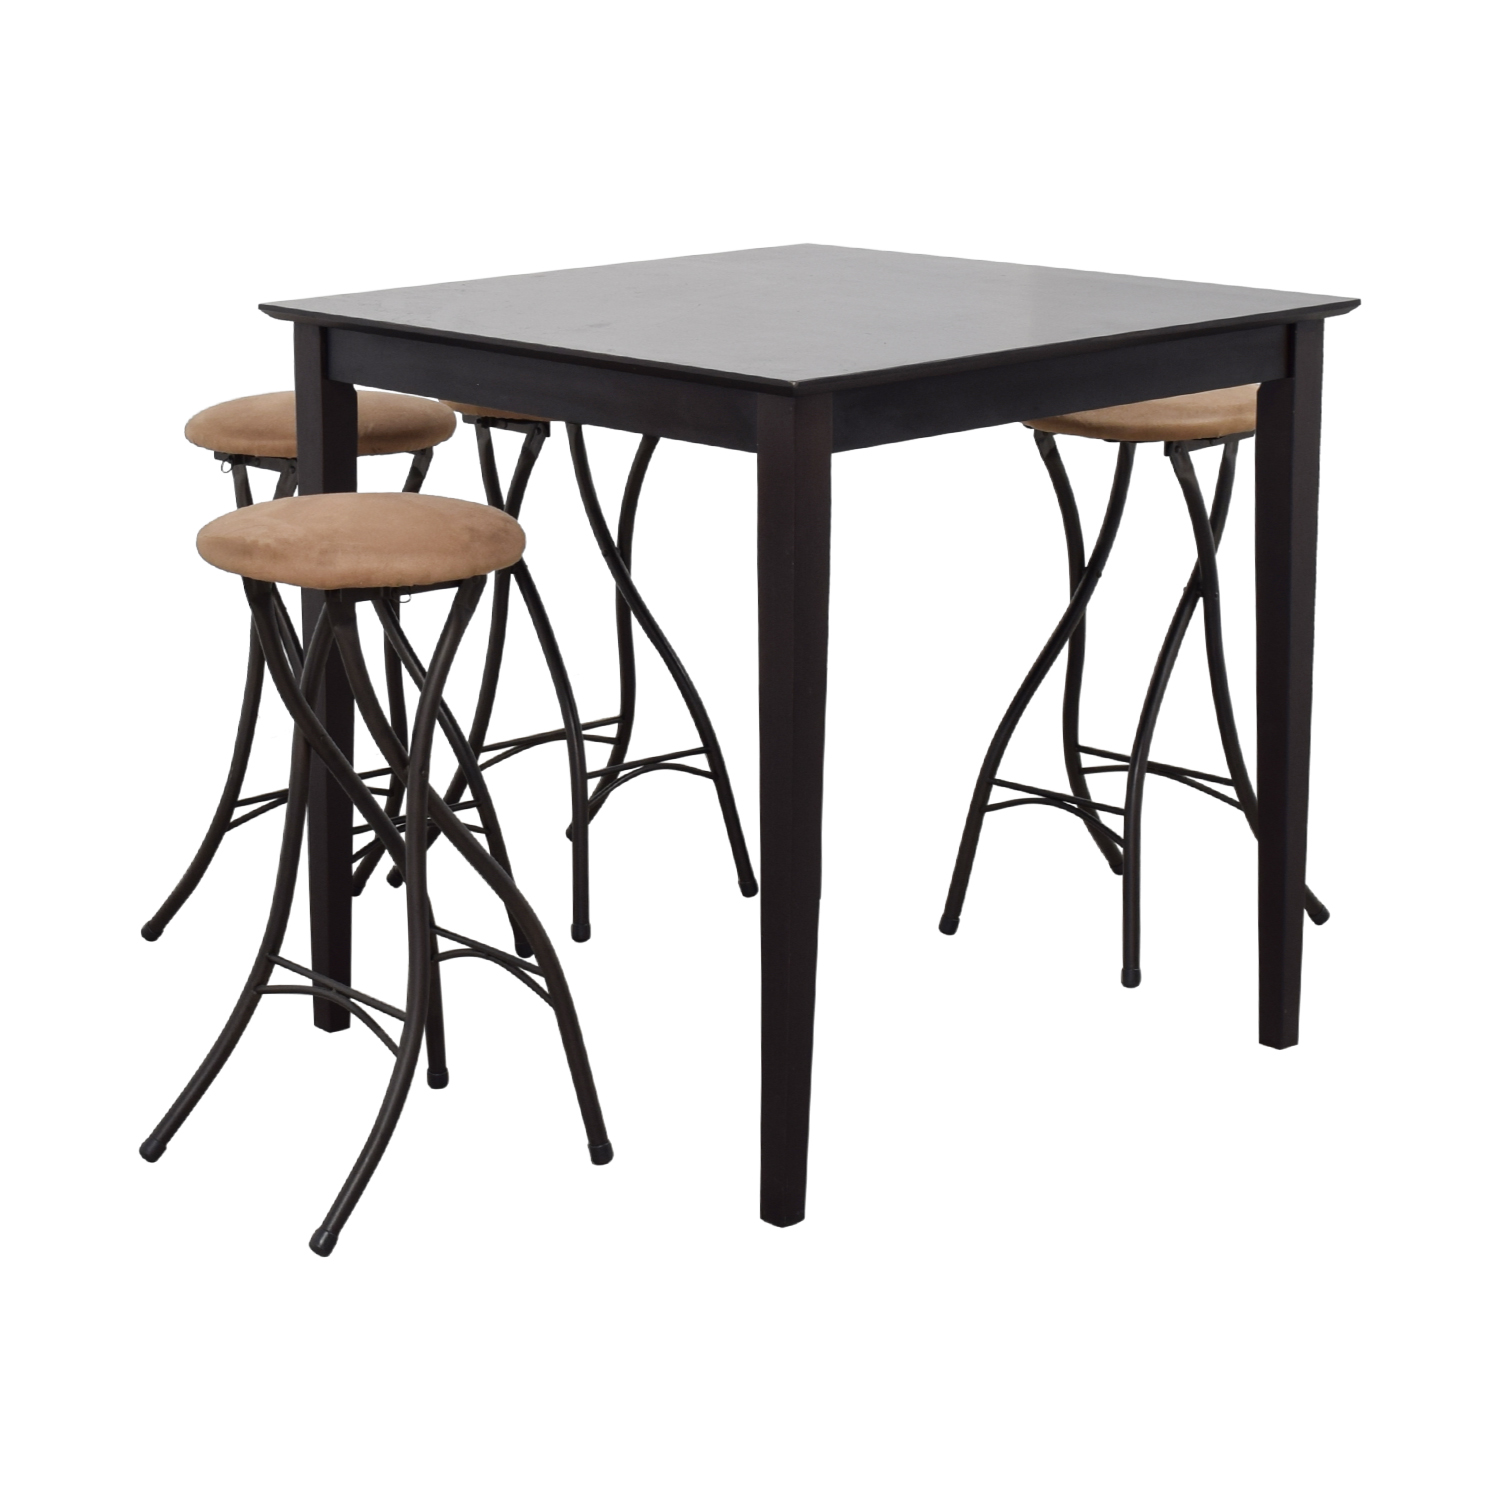 Cheyenne Industries Cheyenne Industries Counter Top Dining Set with Stools used